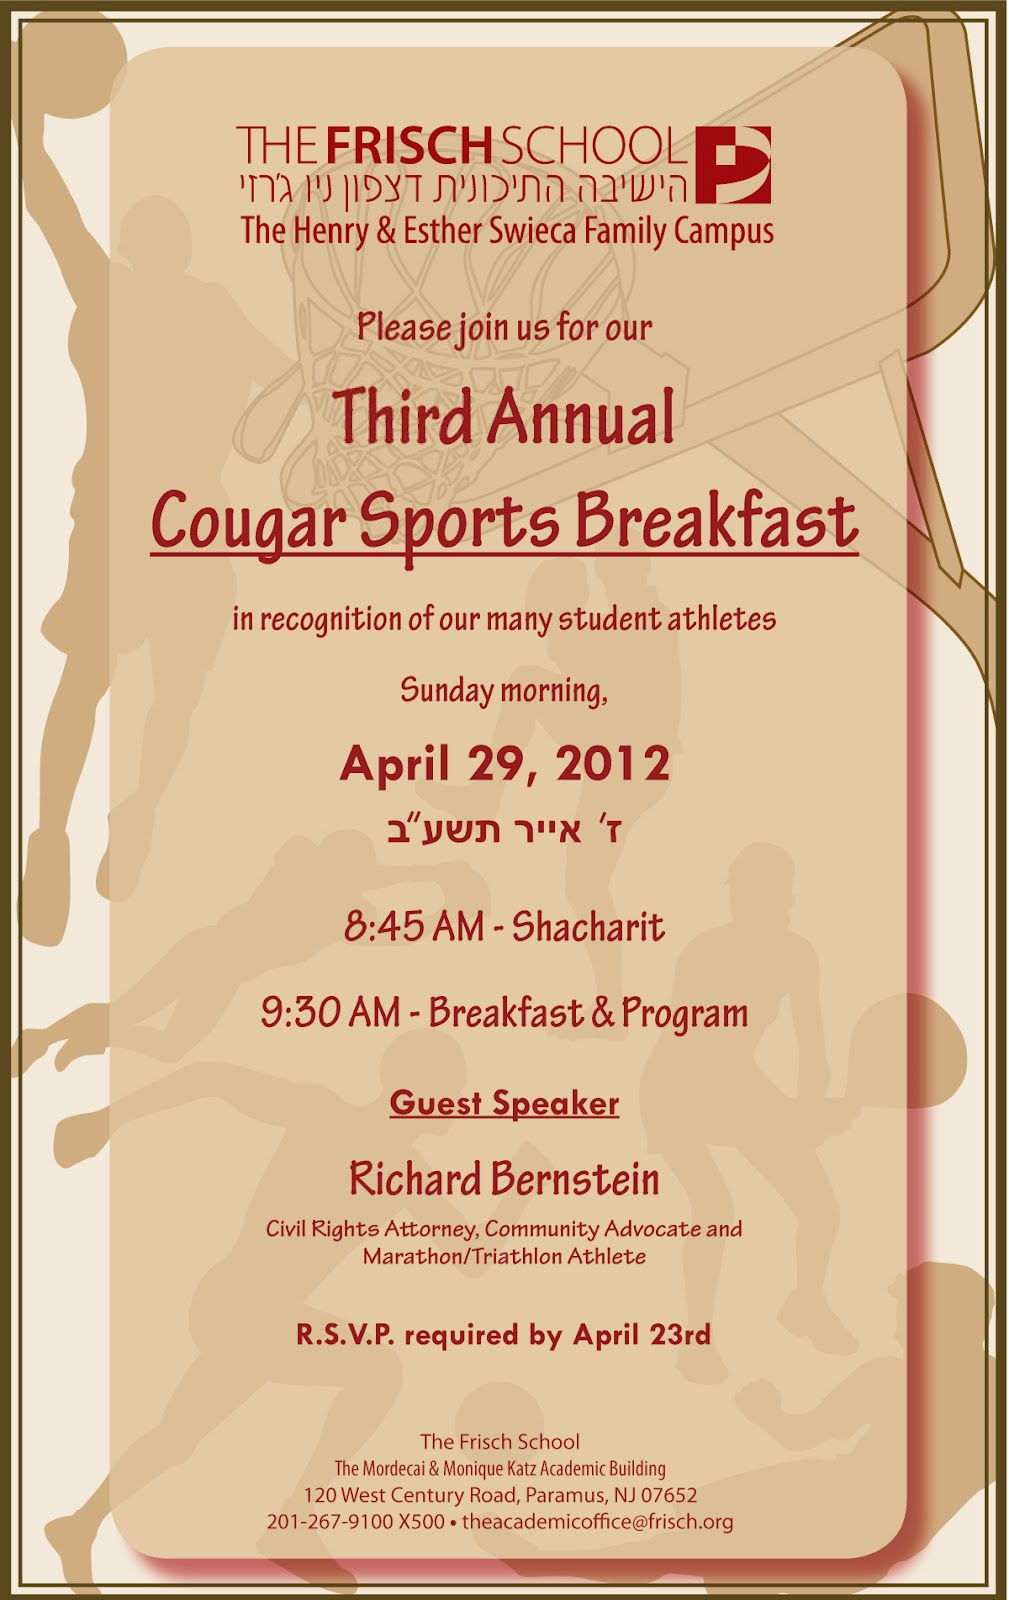 The frisch school please rsvp for our cougar sports breakfast this please rsvp for our cougar sports breakfast this sunday stopboris Images